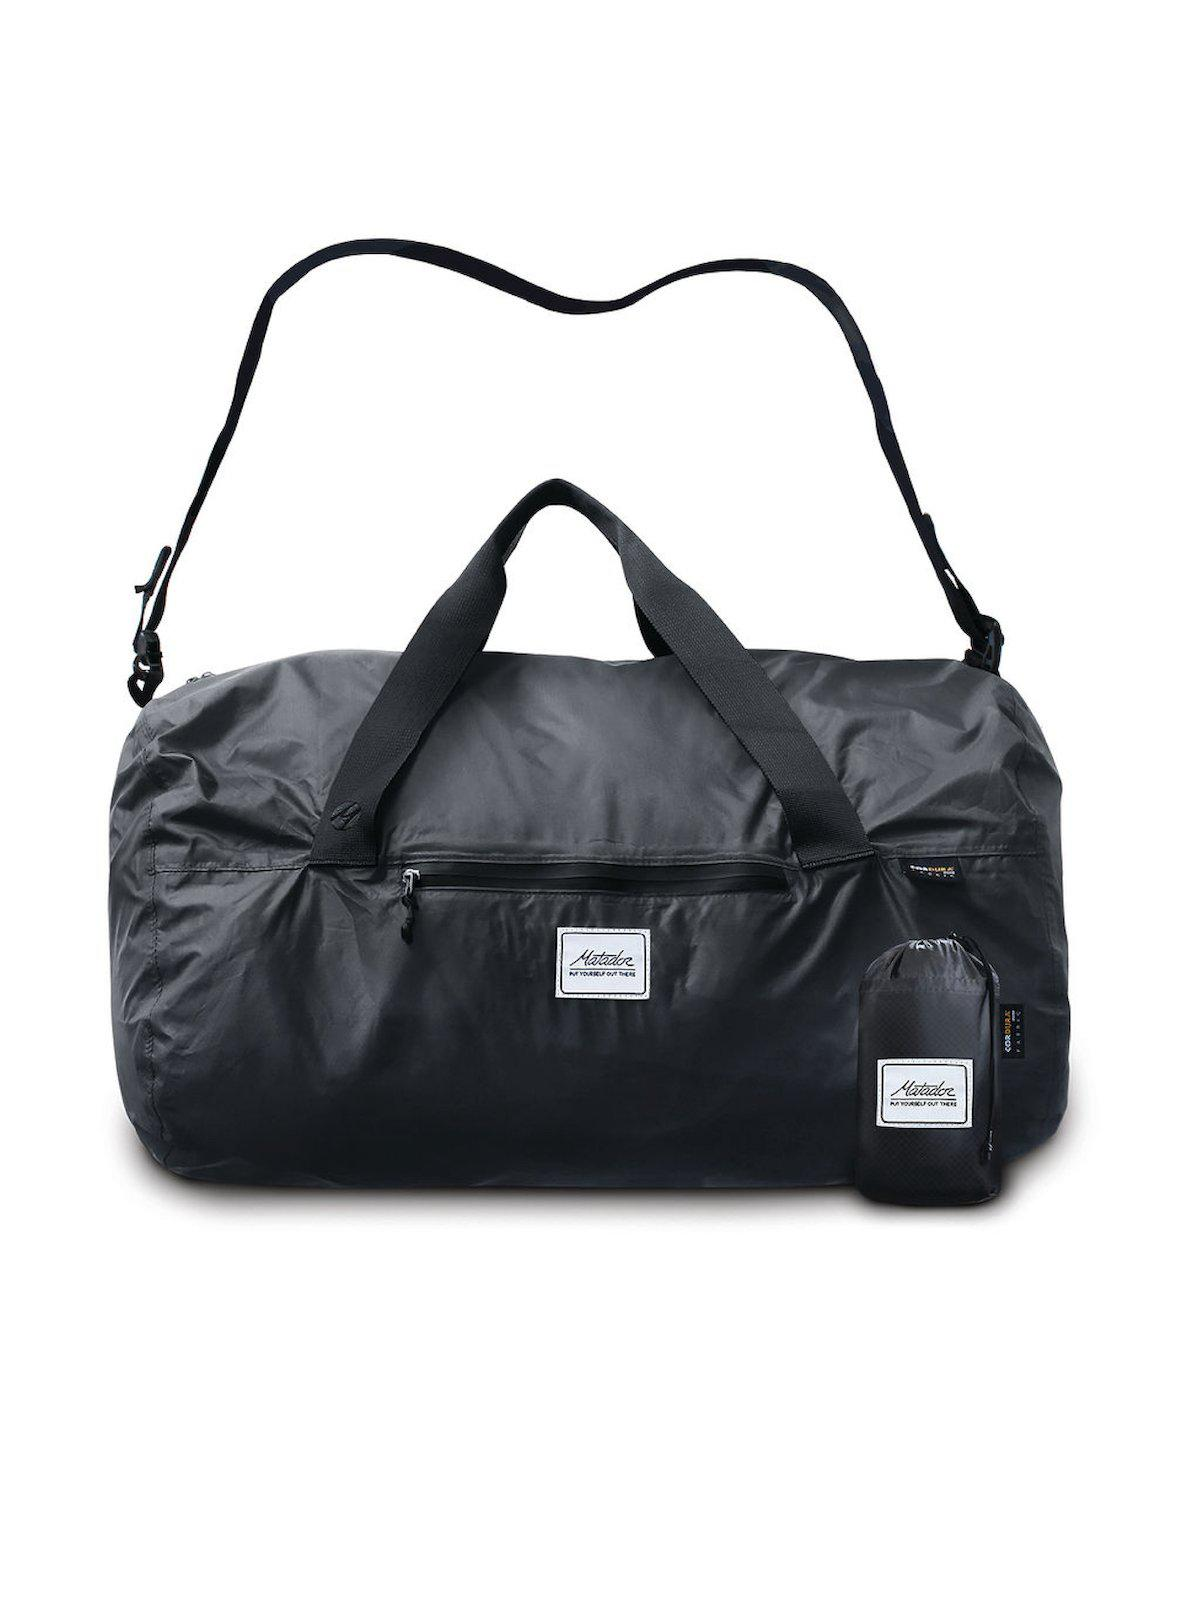 Matador Transit16 Pocket Duffle Bag Charcoal Grey - MORE by Morello Indonesia